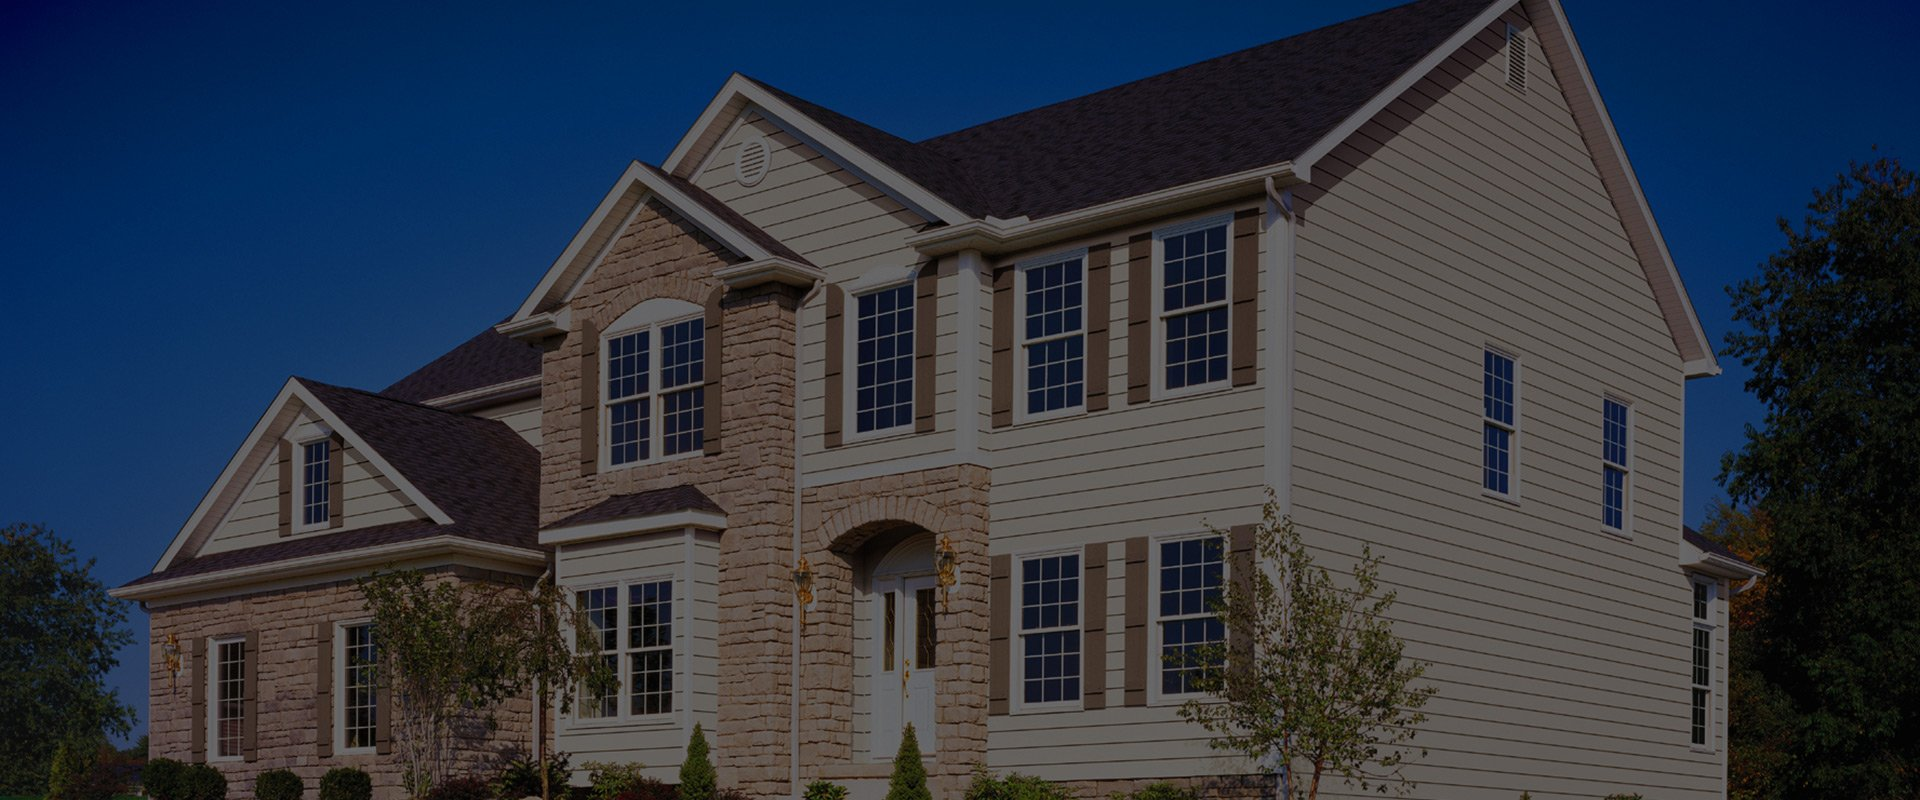 Trusted roofing company